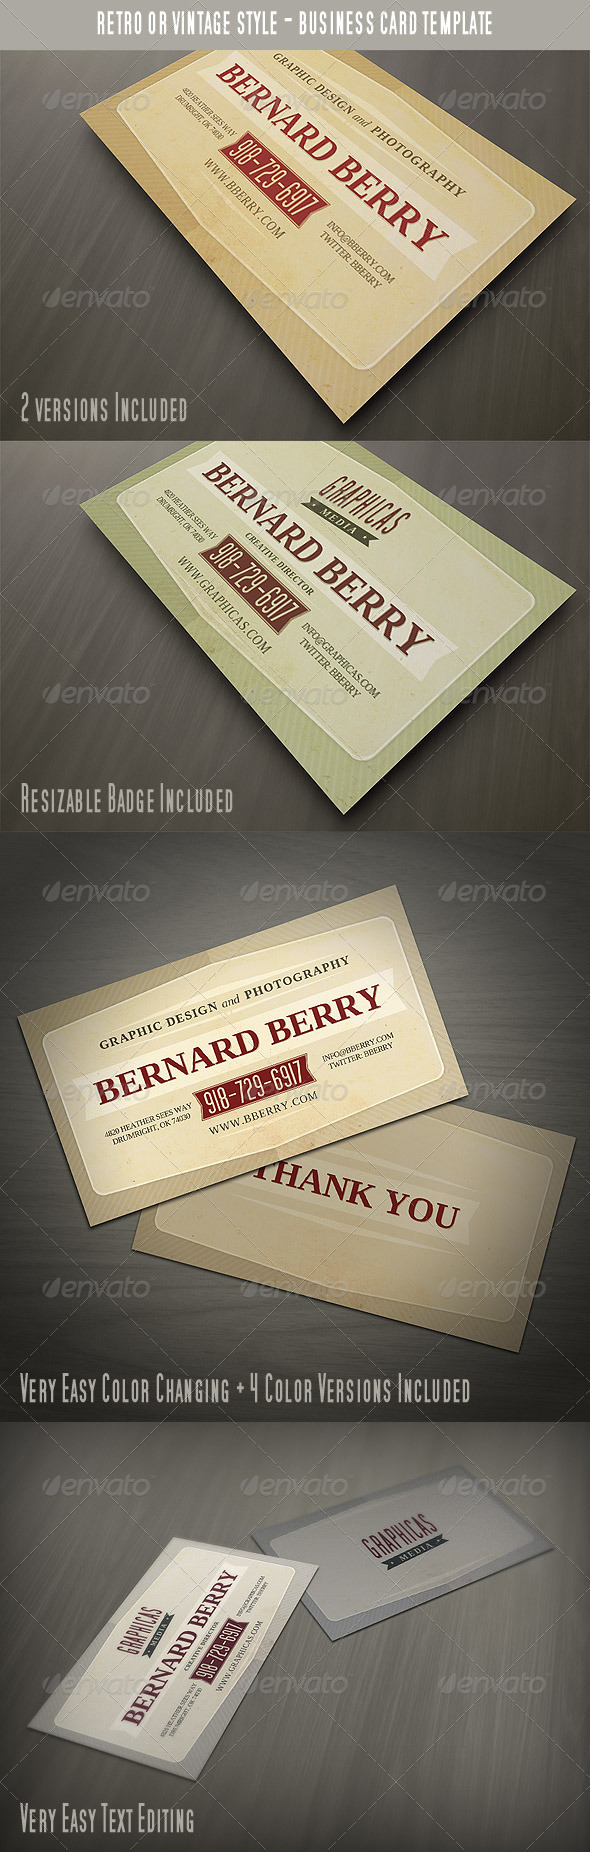 Retro or Vintage Style Business Card - Retro/Vintage Business Cards